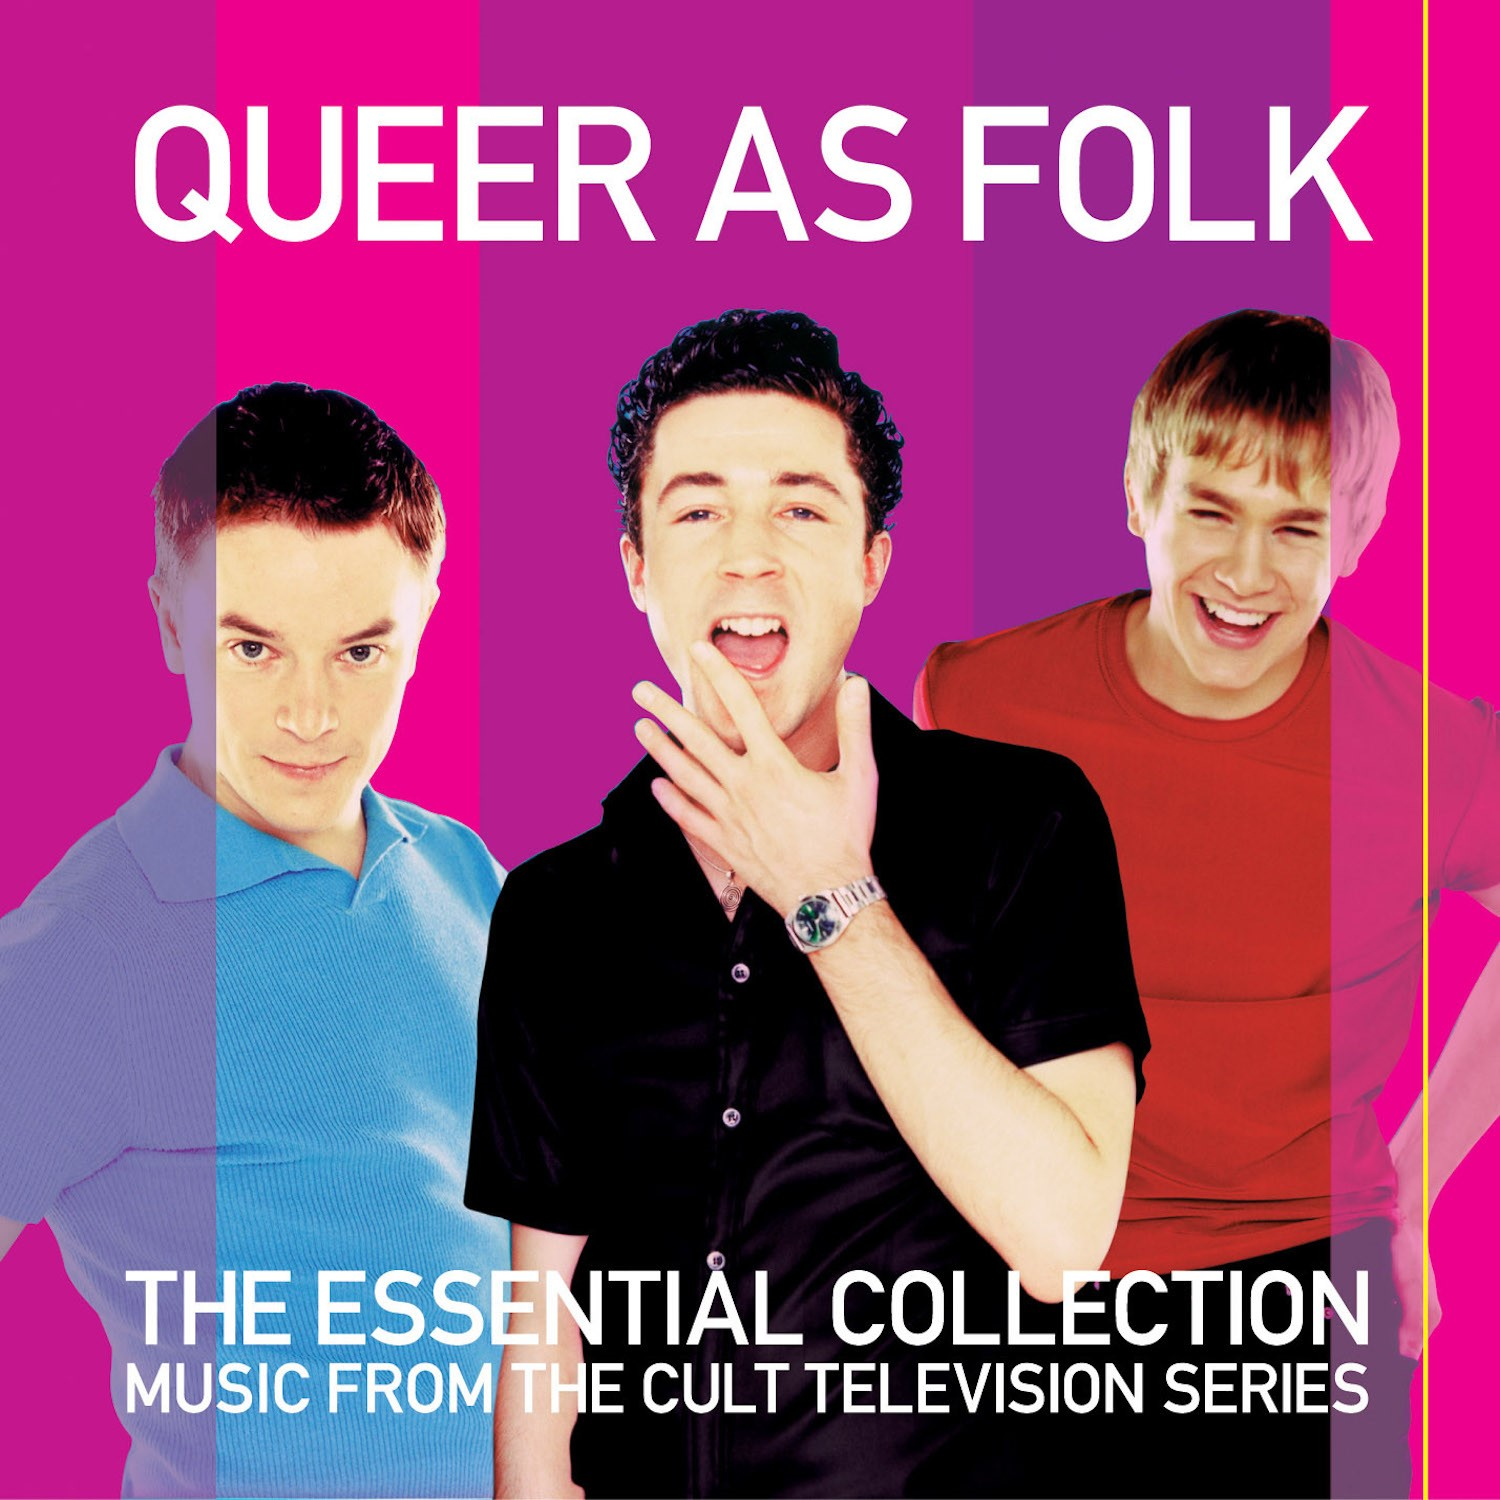 Queer As Folk - Almighty's biggest success to date has without doubt been with the Channel 4 Television series Queer As Folk. Excited to be guided through the world of television, the stakes were raised when Channel 4 enquired about releasing an Original Soundtrack Album…Read More →